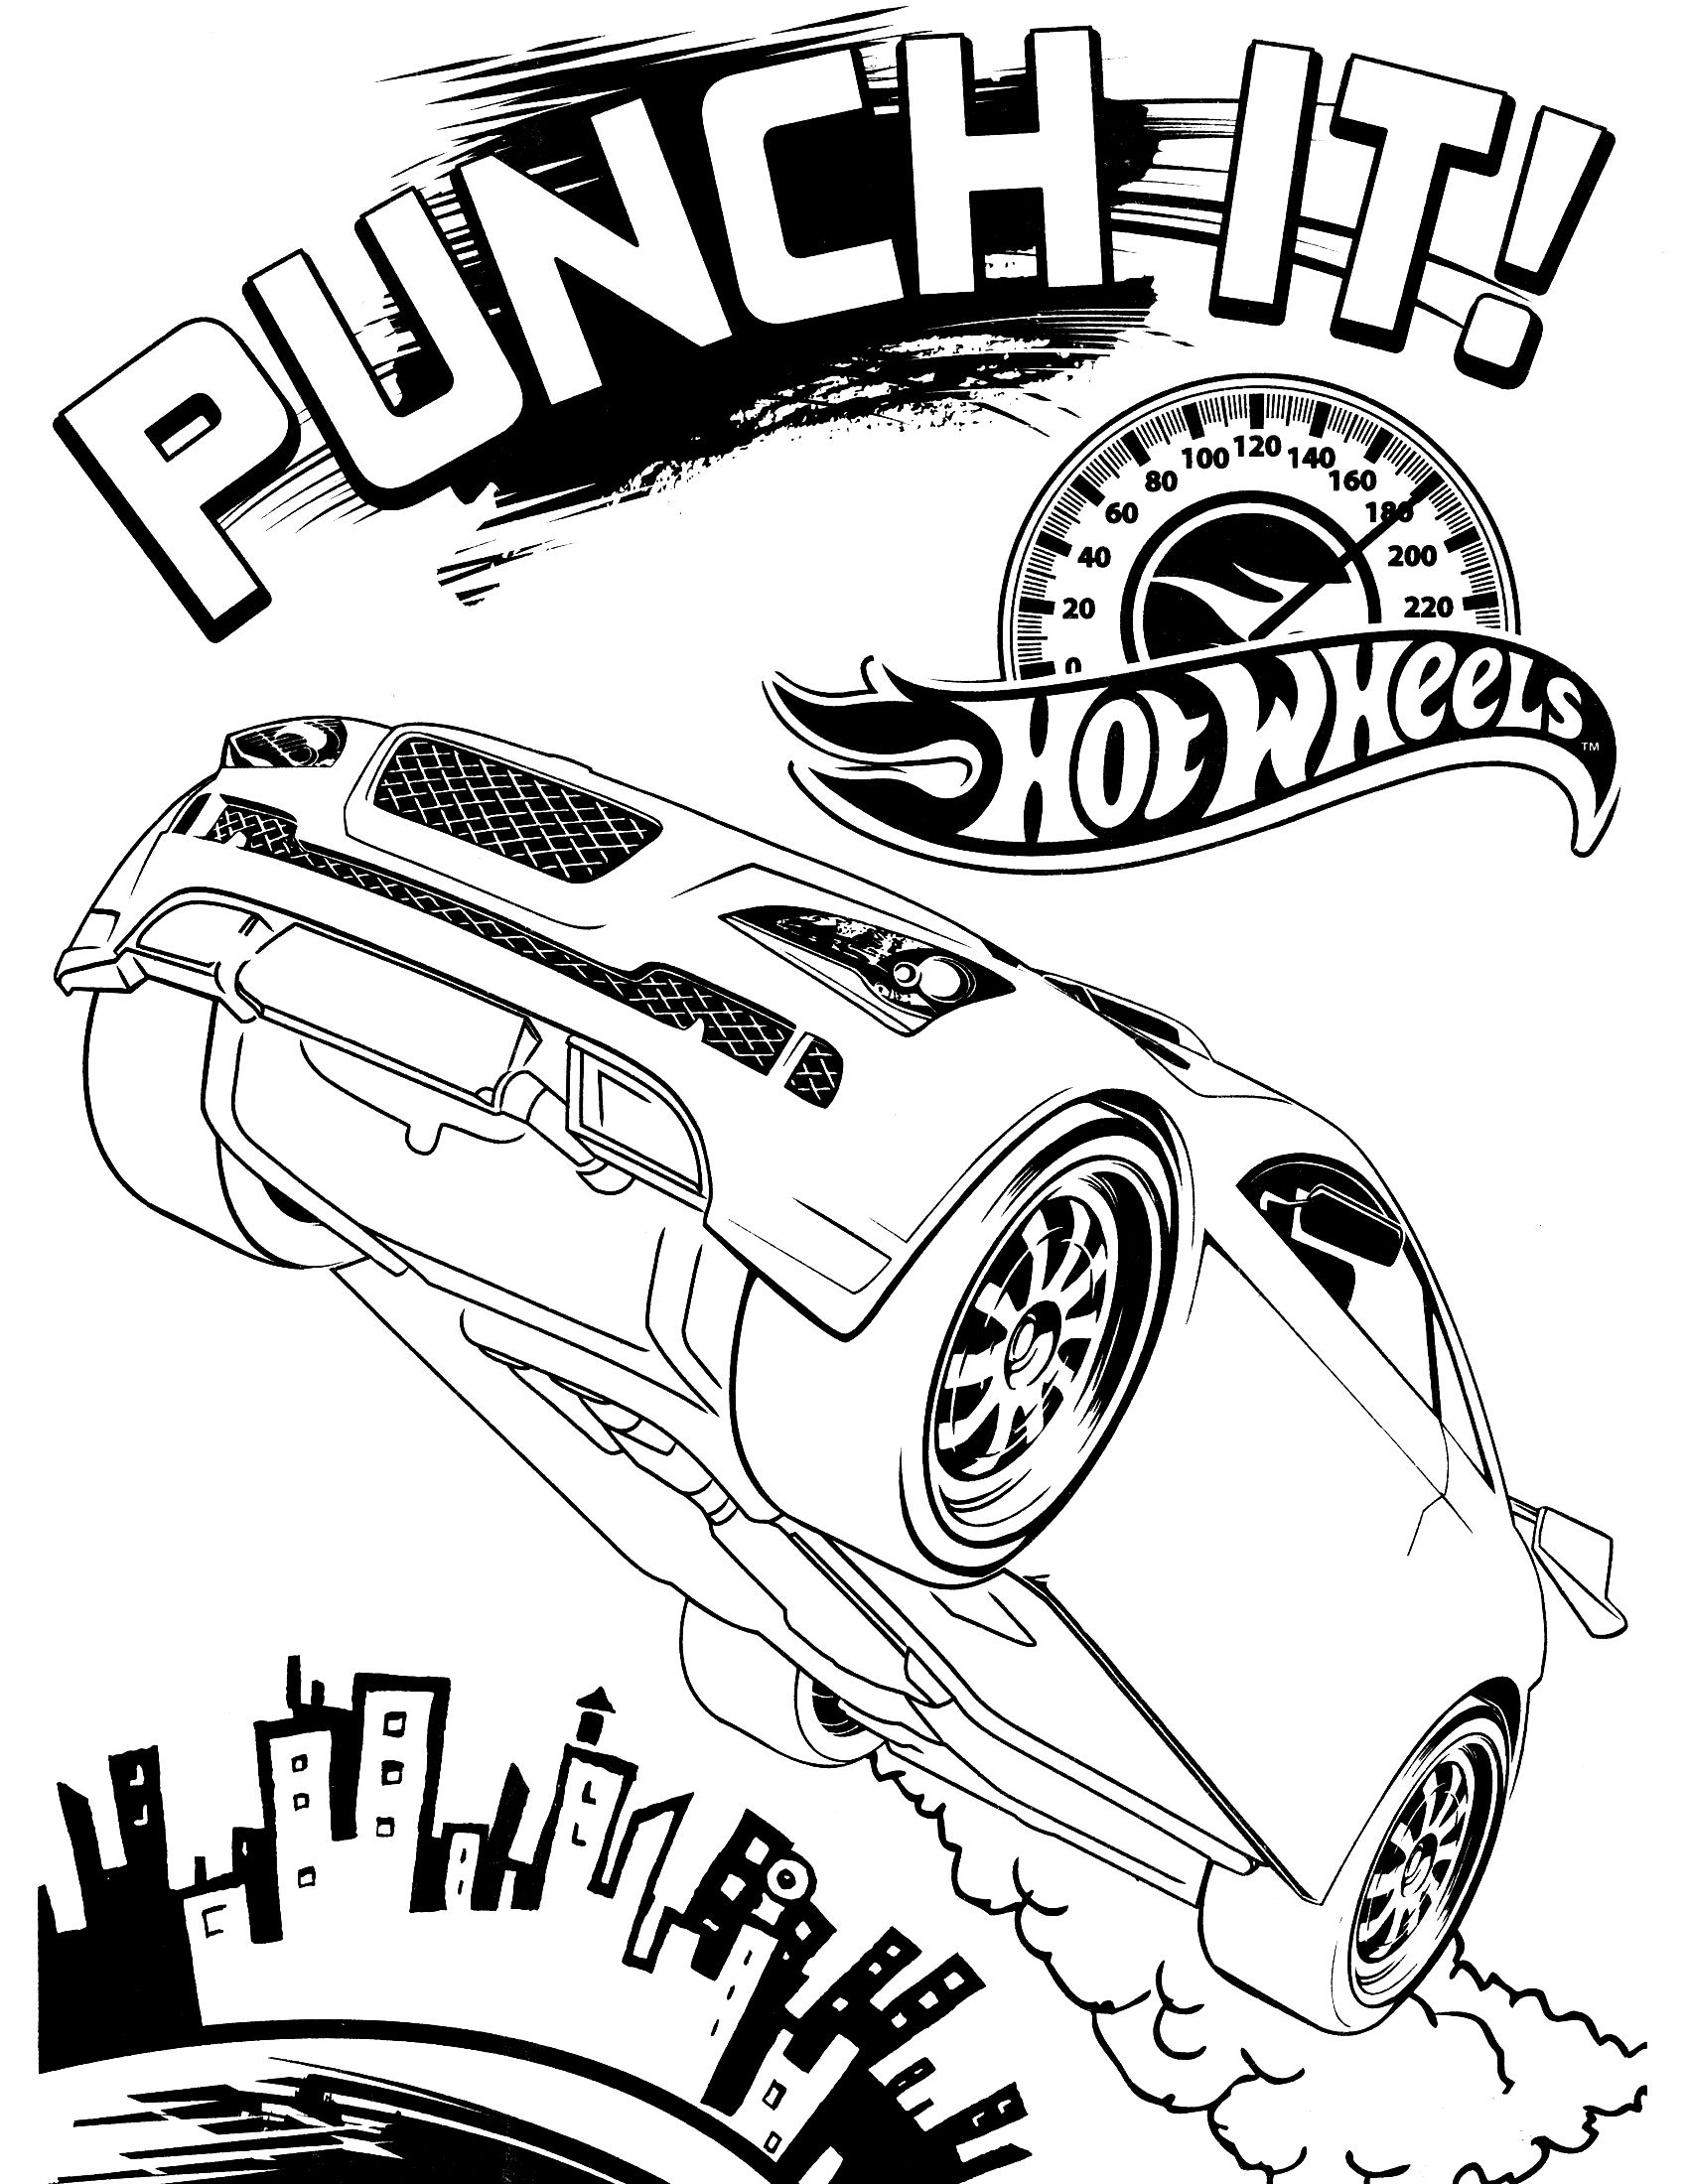 hot wheels printable coloring pages | Coloring Pages Hot Wheels Page ...